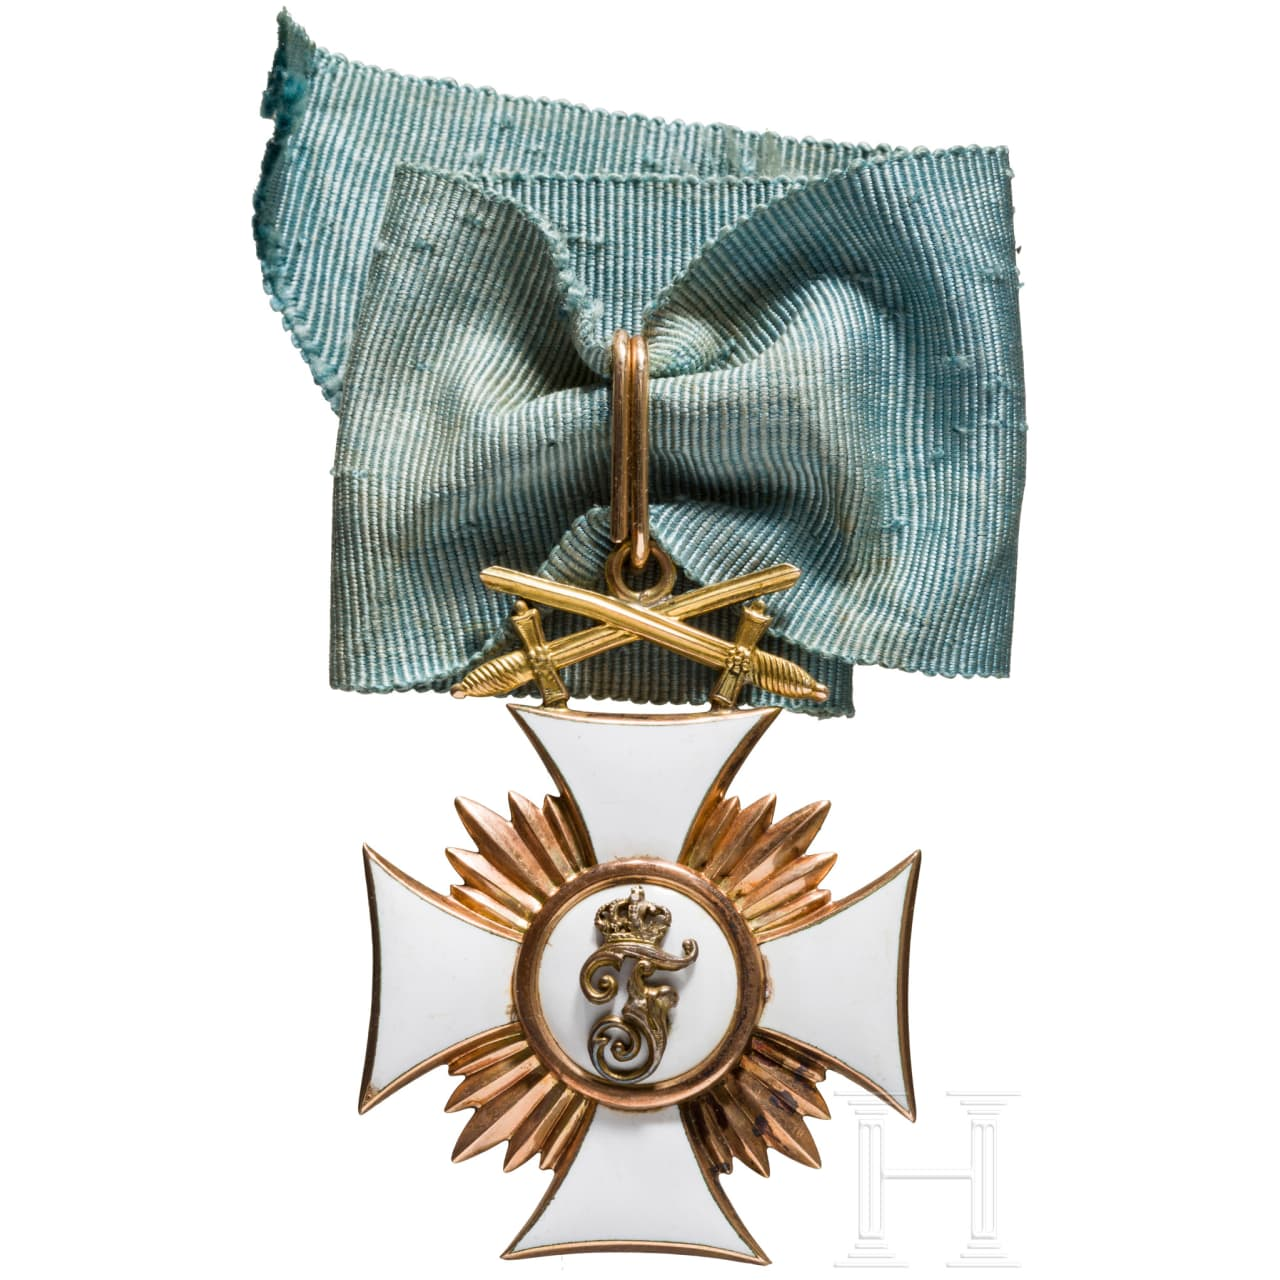 Friedrich Order - Knight's Cross 1st class with swords